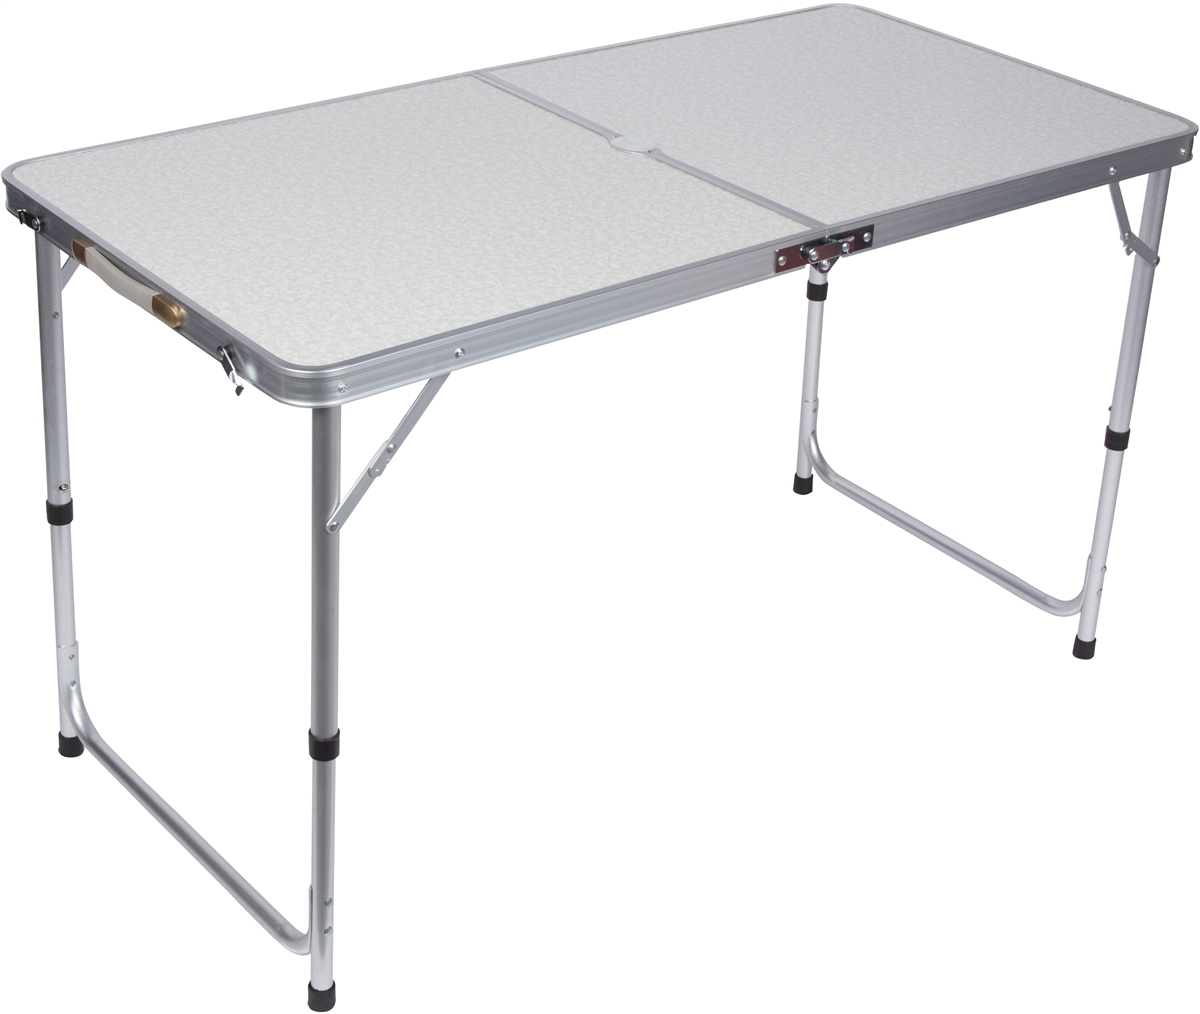 Beau Lightweight Adjustable Portable Folding Aluminum Camp Table With Carry  Handle By Trademark Innovations